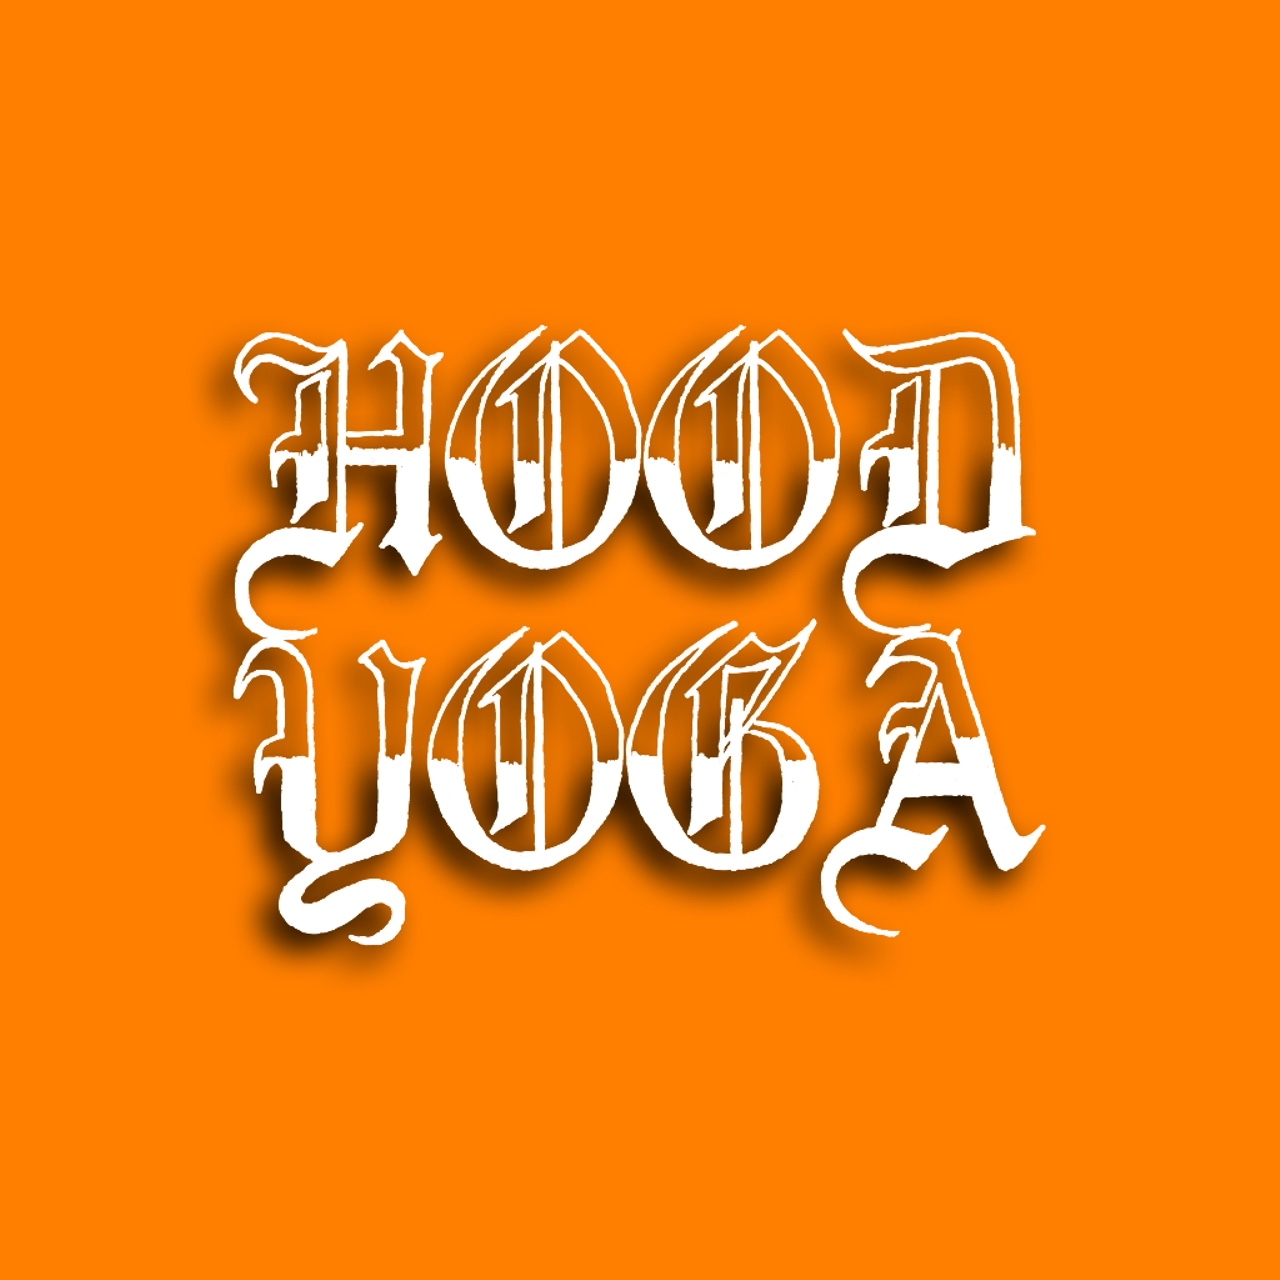 HOOD YOGA PRESENTS    THE CLASSIC DECAL BLACK   COMING SOON